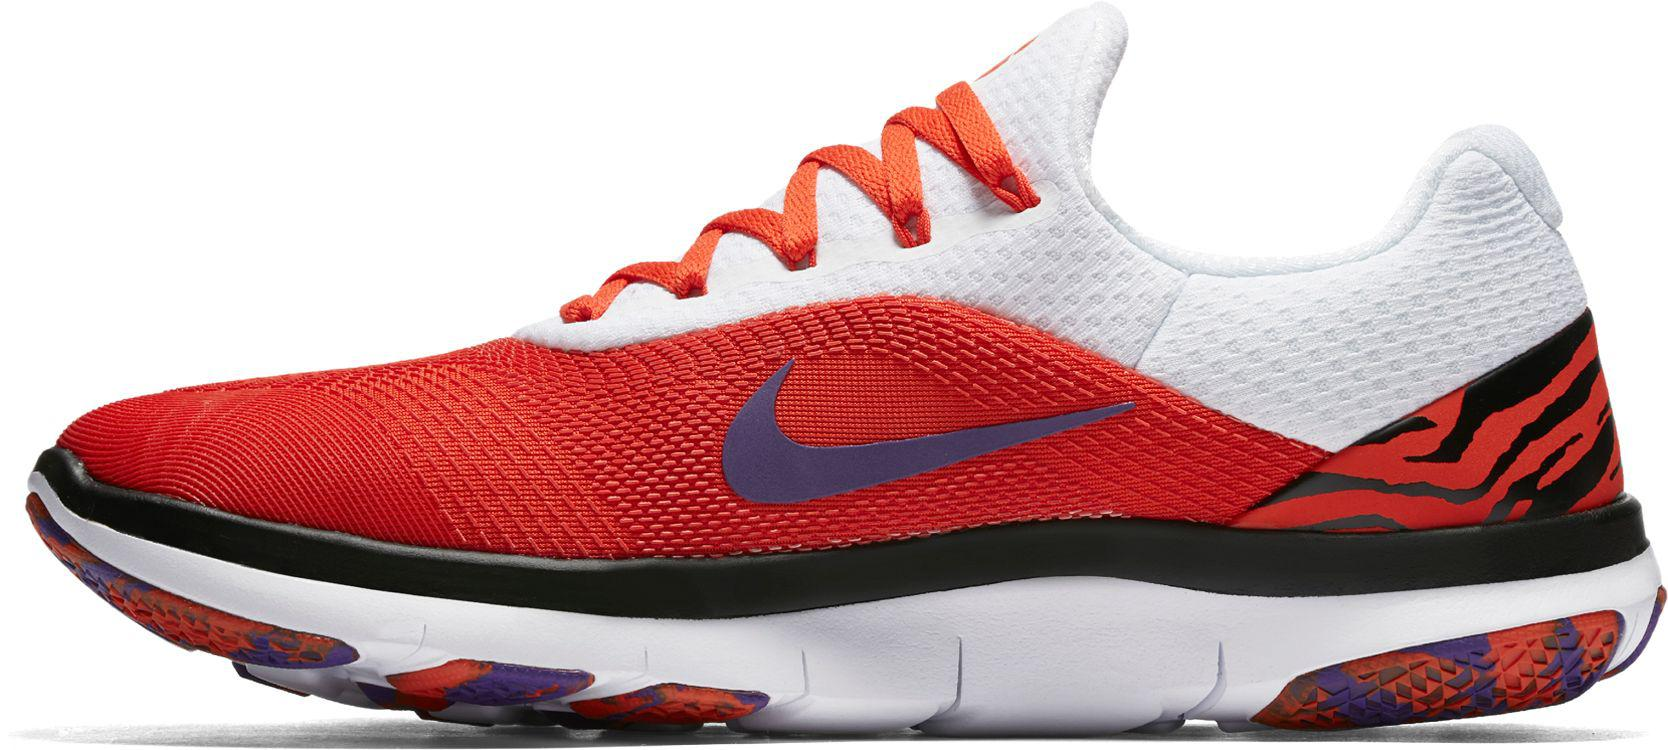 675c263289 ... closeout lyst nike free trainer v7 week zero clemson edition training  shoes dbef8 9232e